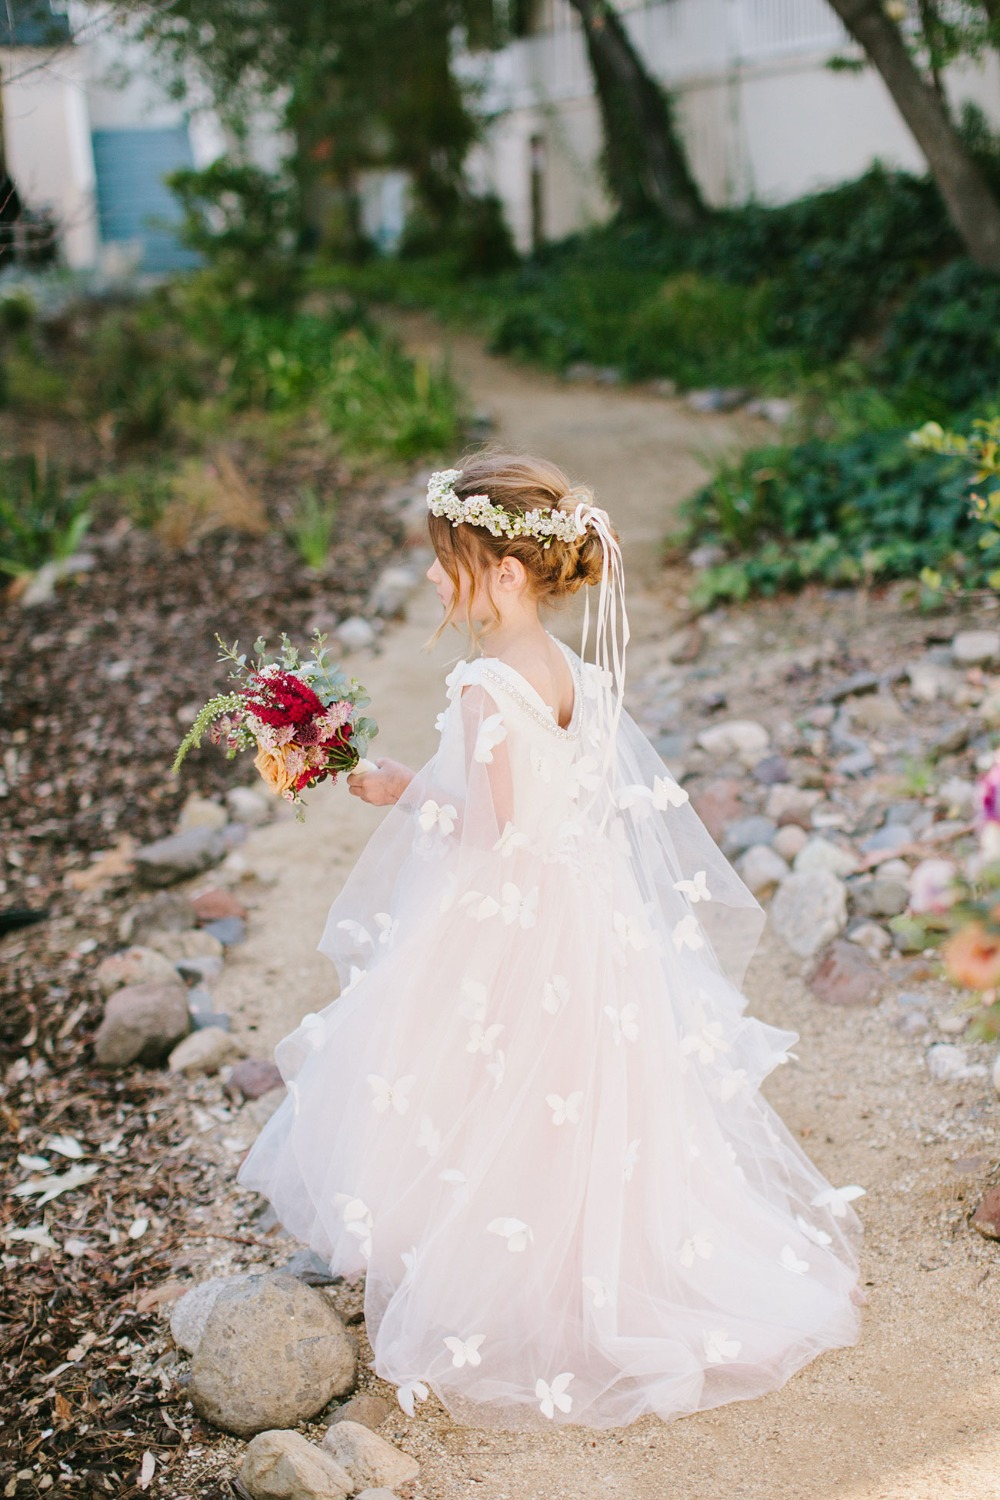 sweet little flower girl look